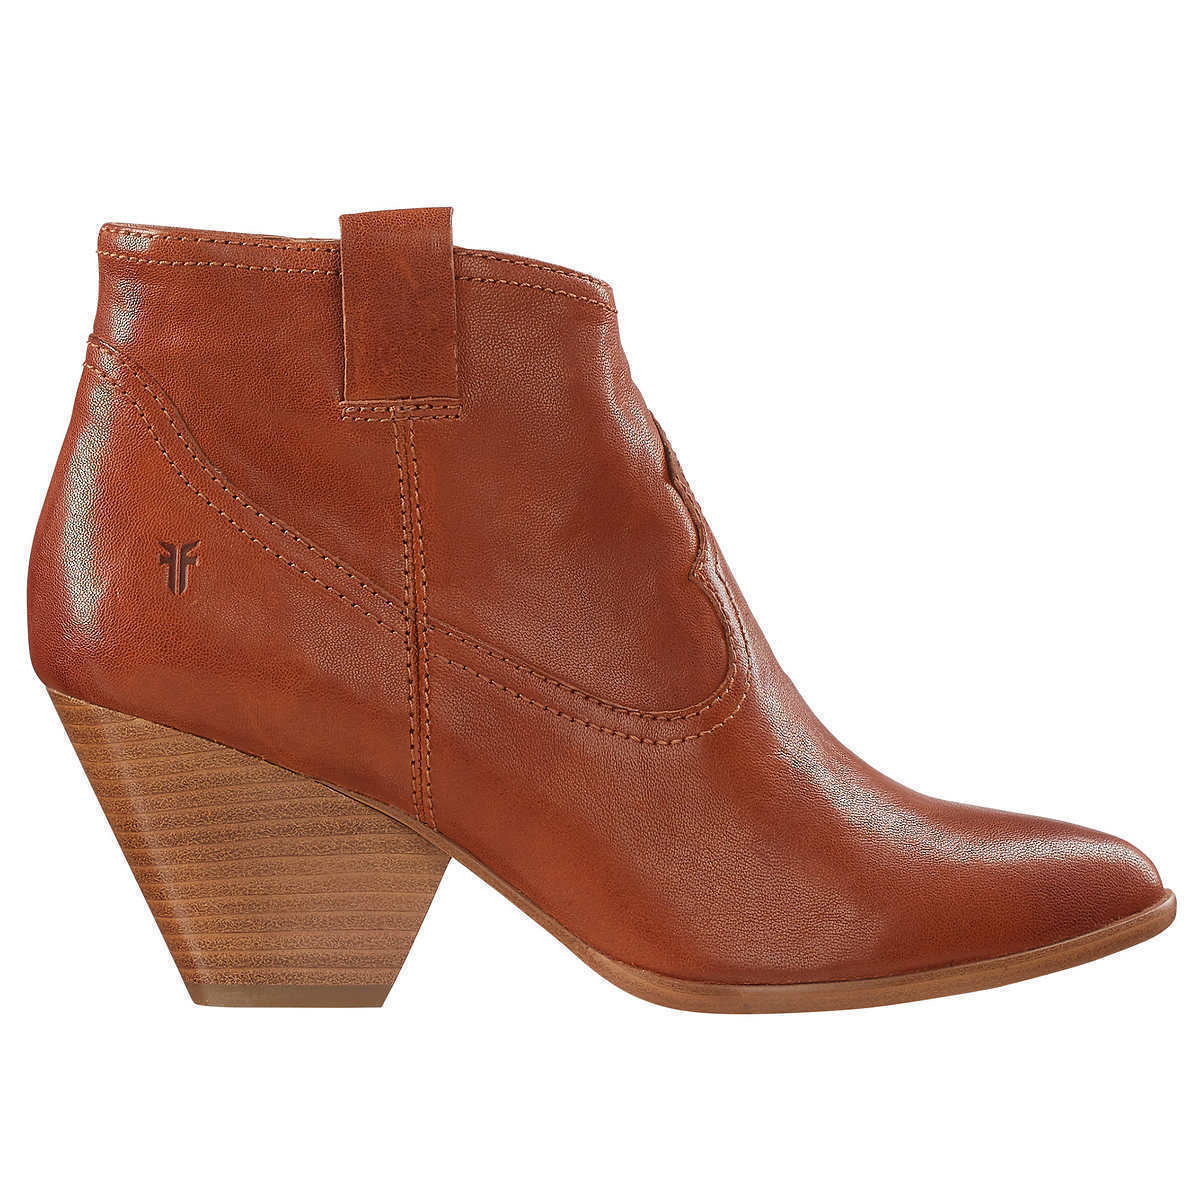 NEW   Frye Women's Reina Reina Reina Western Leather Ankle Boots Variety 5a38ab